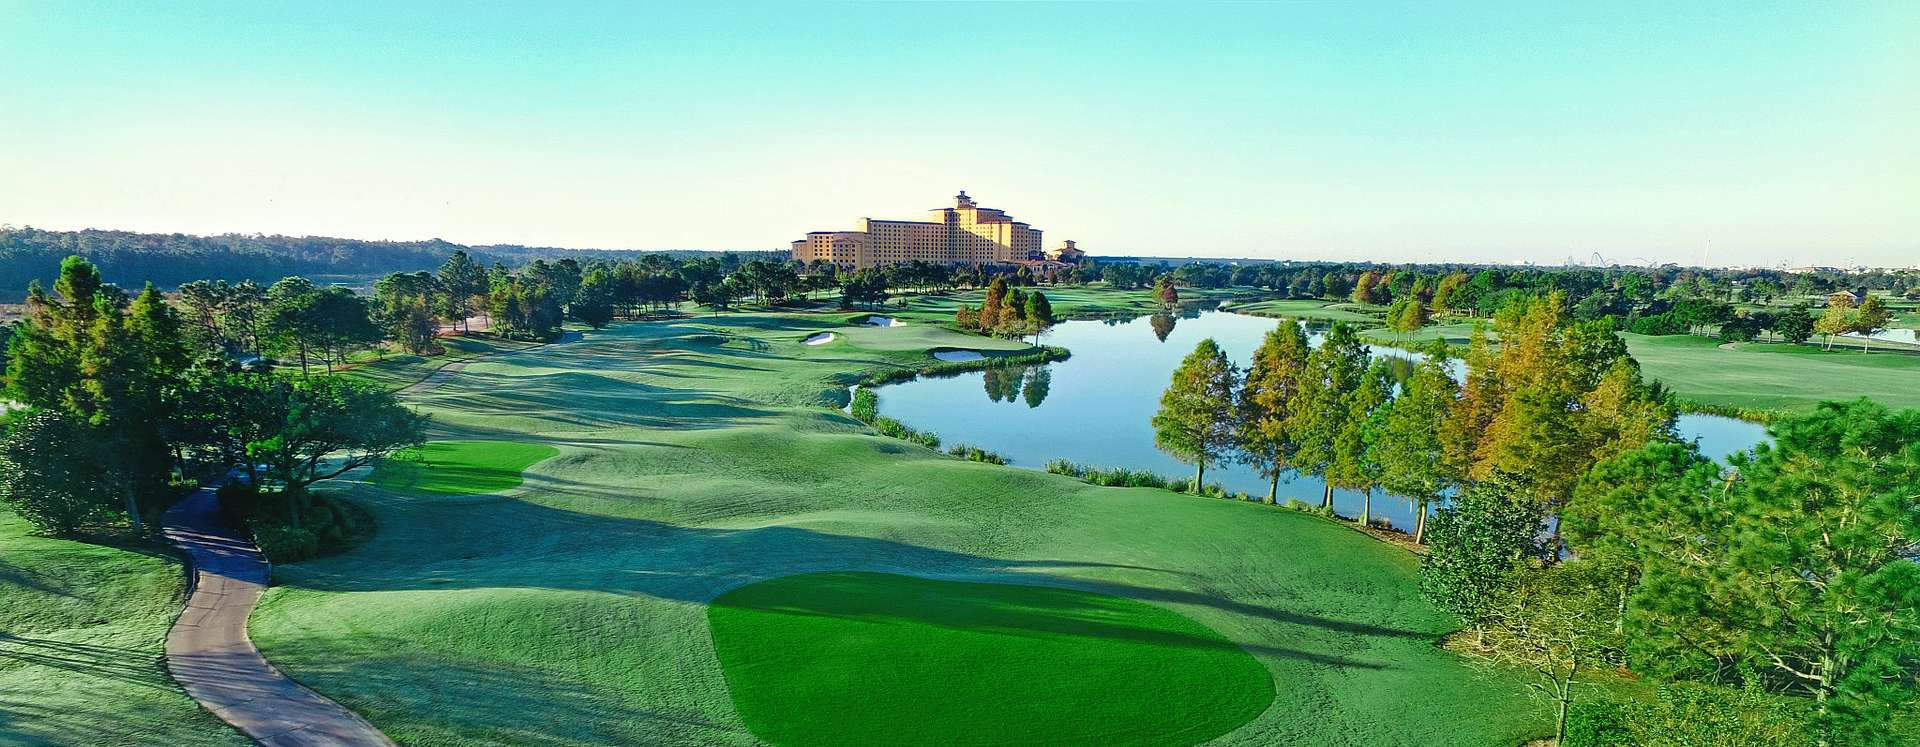 Overview of the golf course and resort at Shingle Creek Golf Club